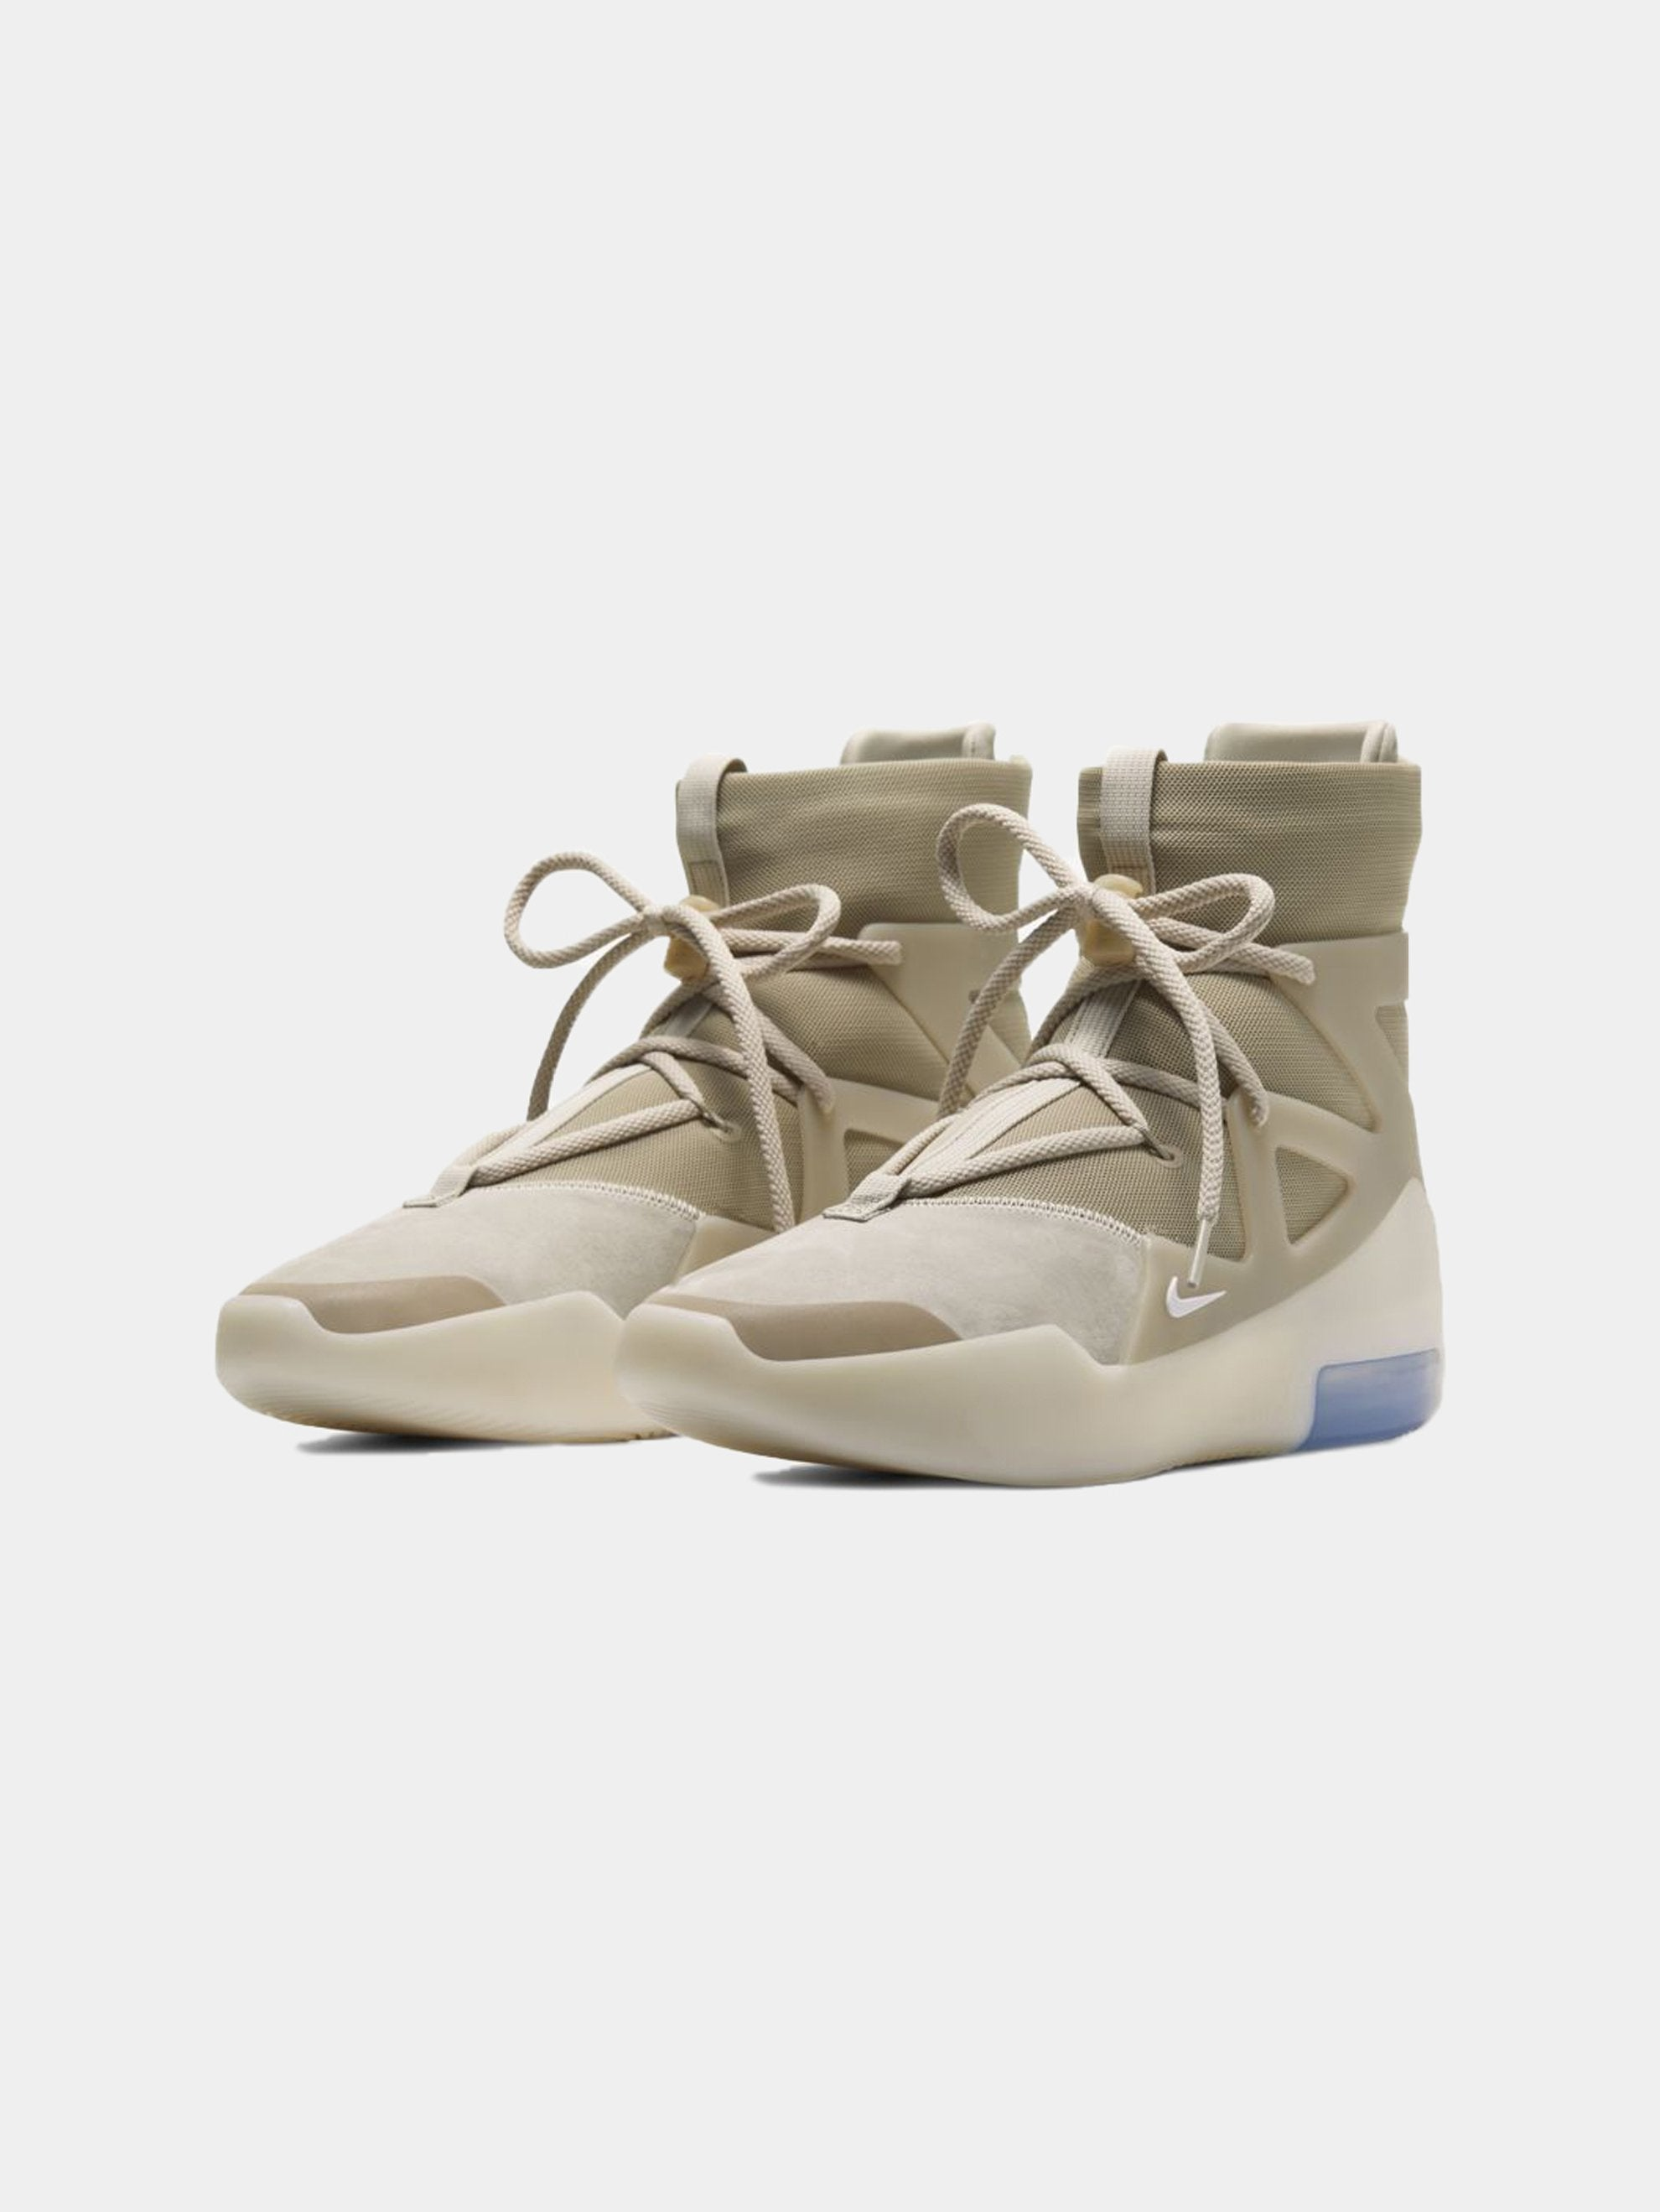 Multi-Color/String Oatmeal Nike Air Fear of God 1 2